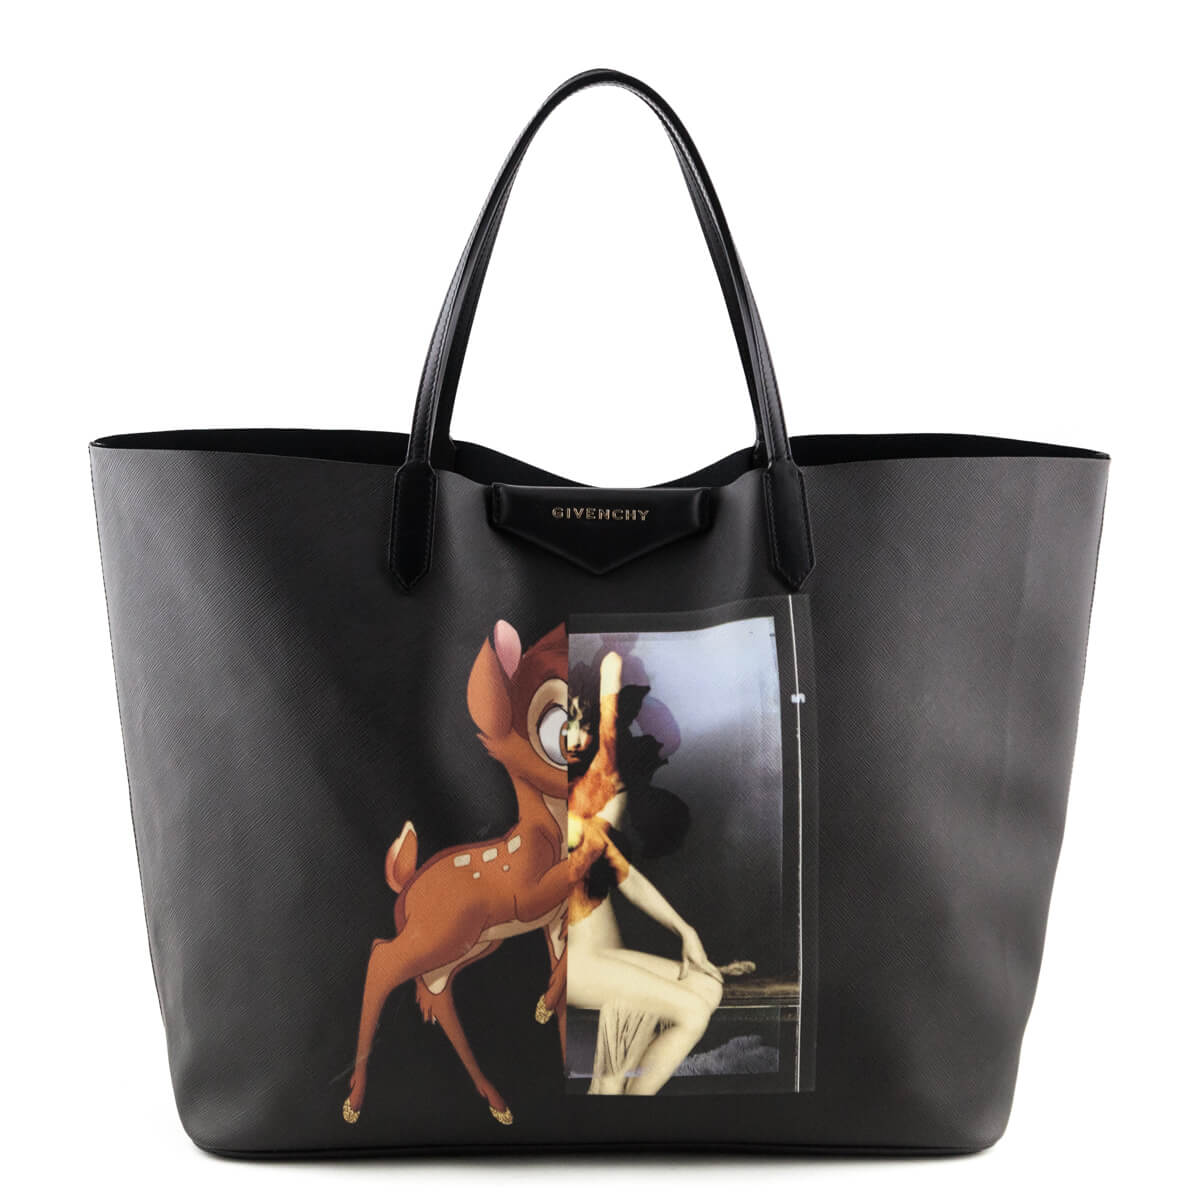 3cf3ddf4b64e Givenchy Black Coated Canvas Bambi Podium Antigona Tote - LOVE that BAG -  Preowned Authentic Designer ...